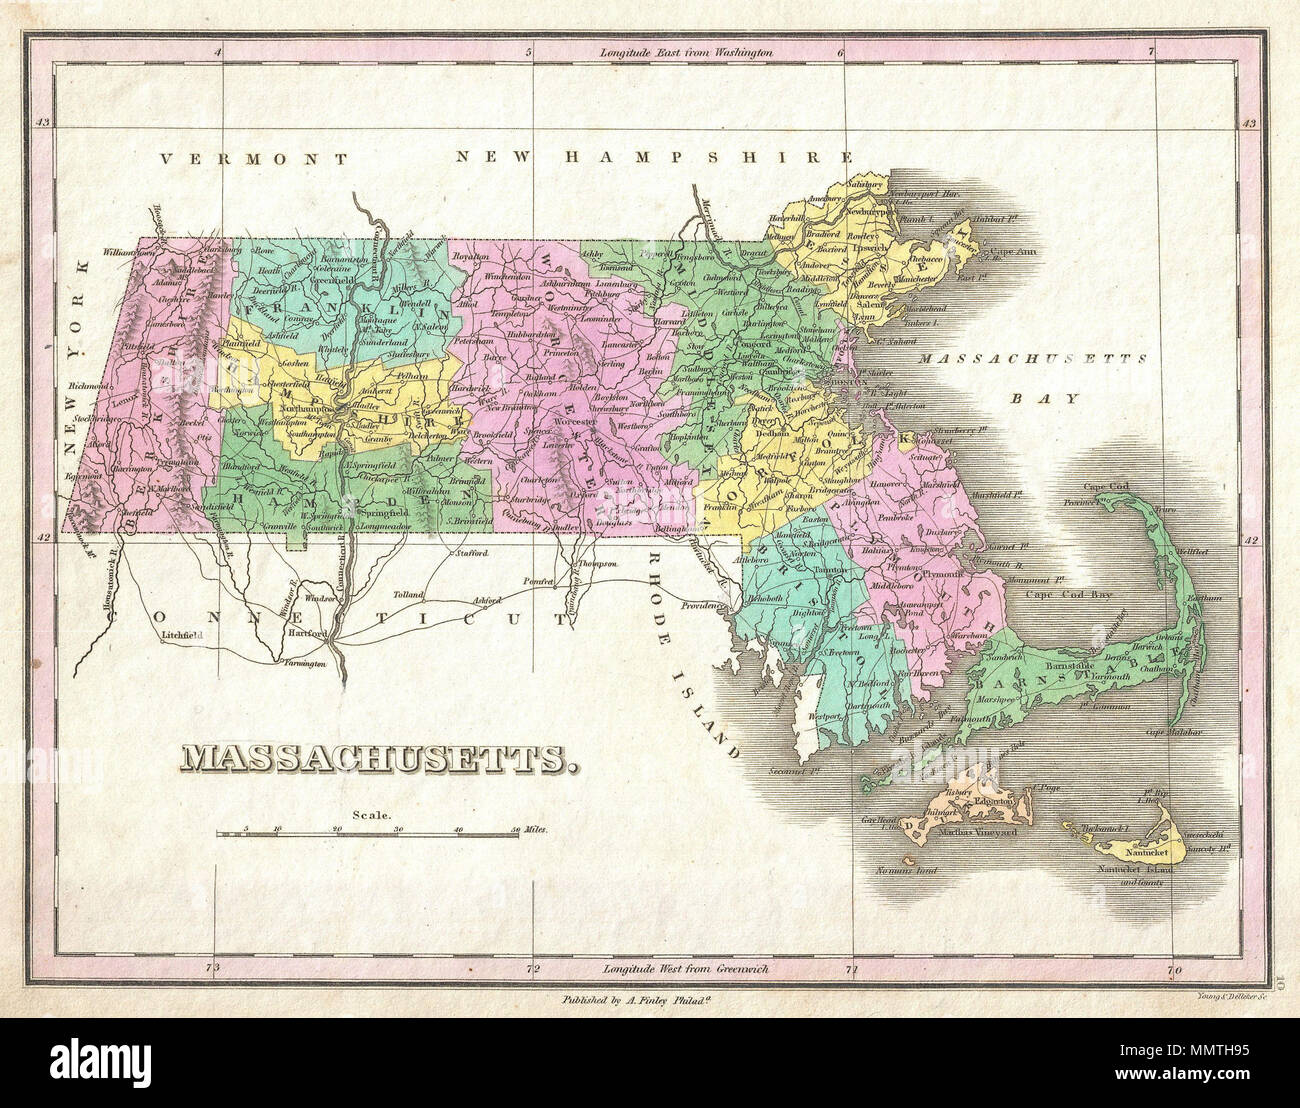 English: A beautiful example of Finley's important 1827 map